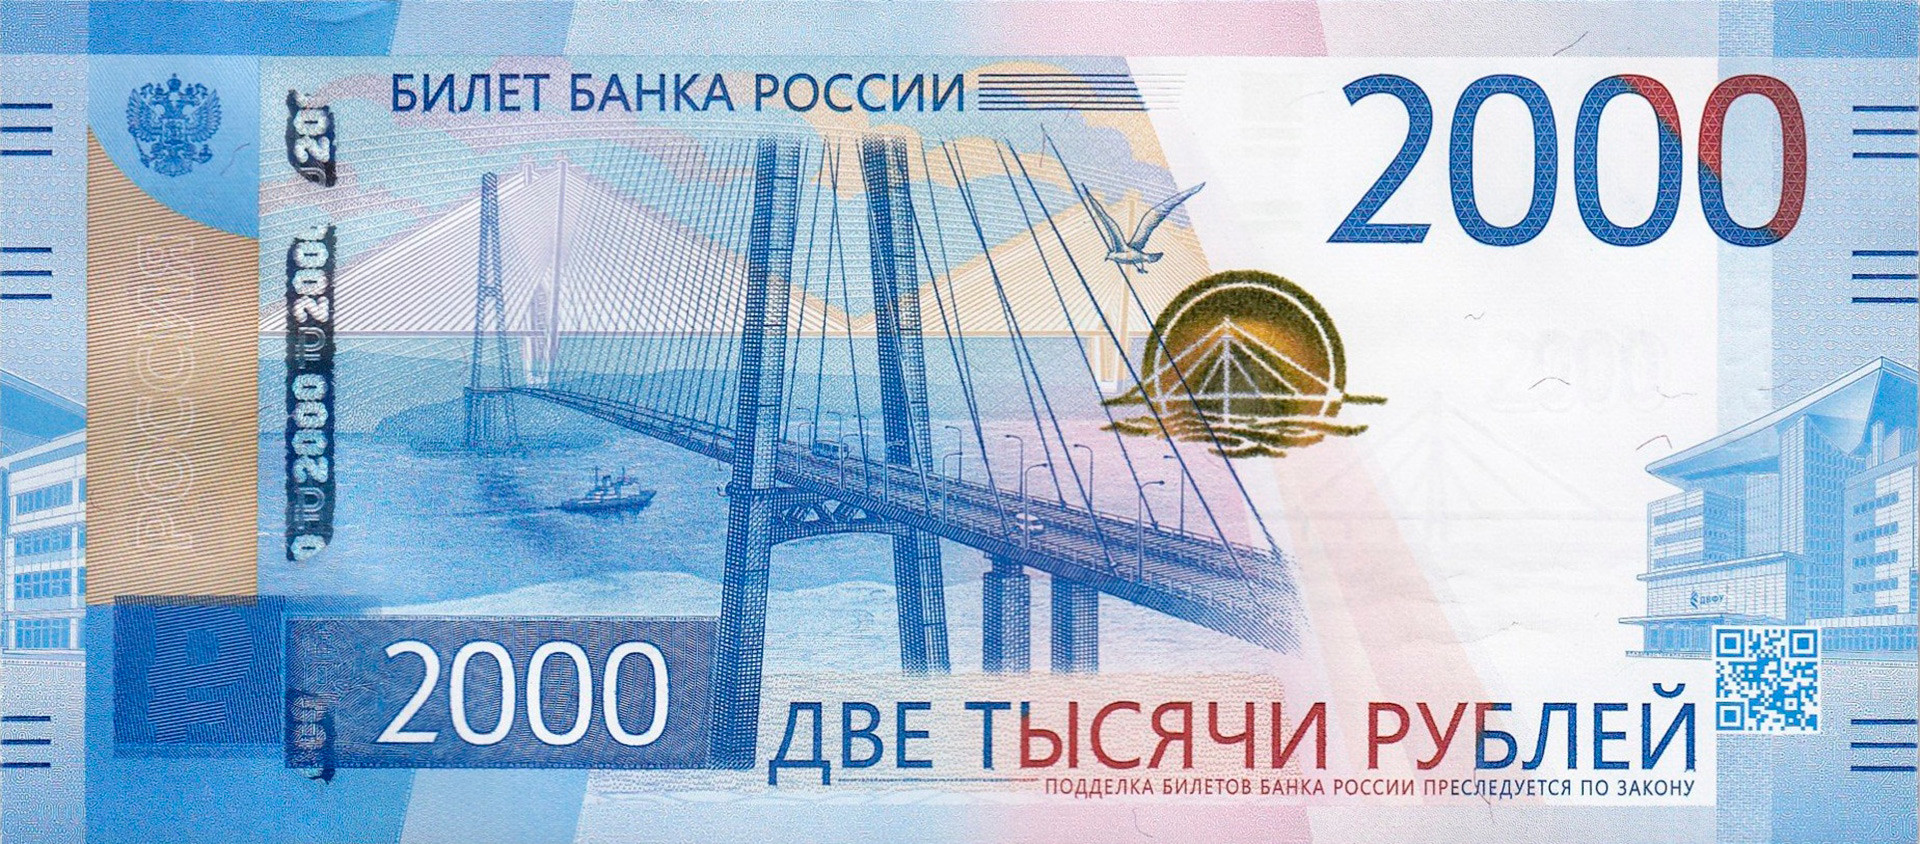 A brand-new 2,000-ruble banknote